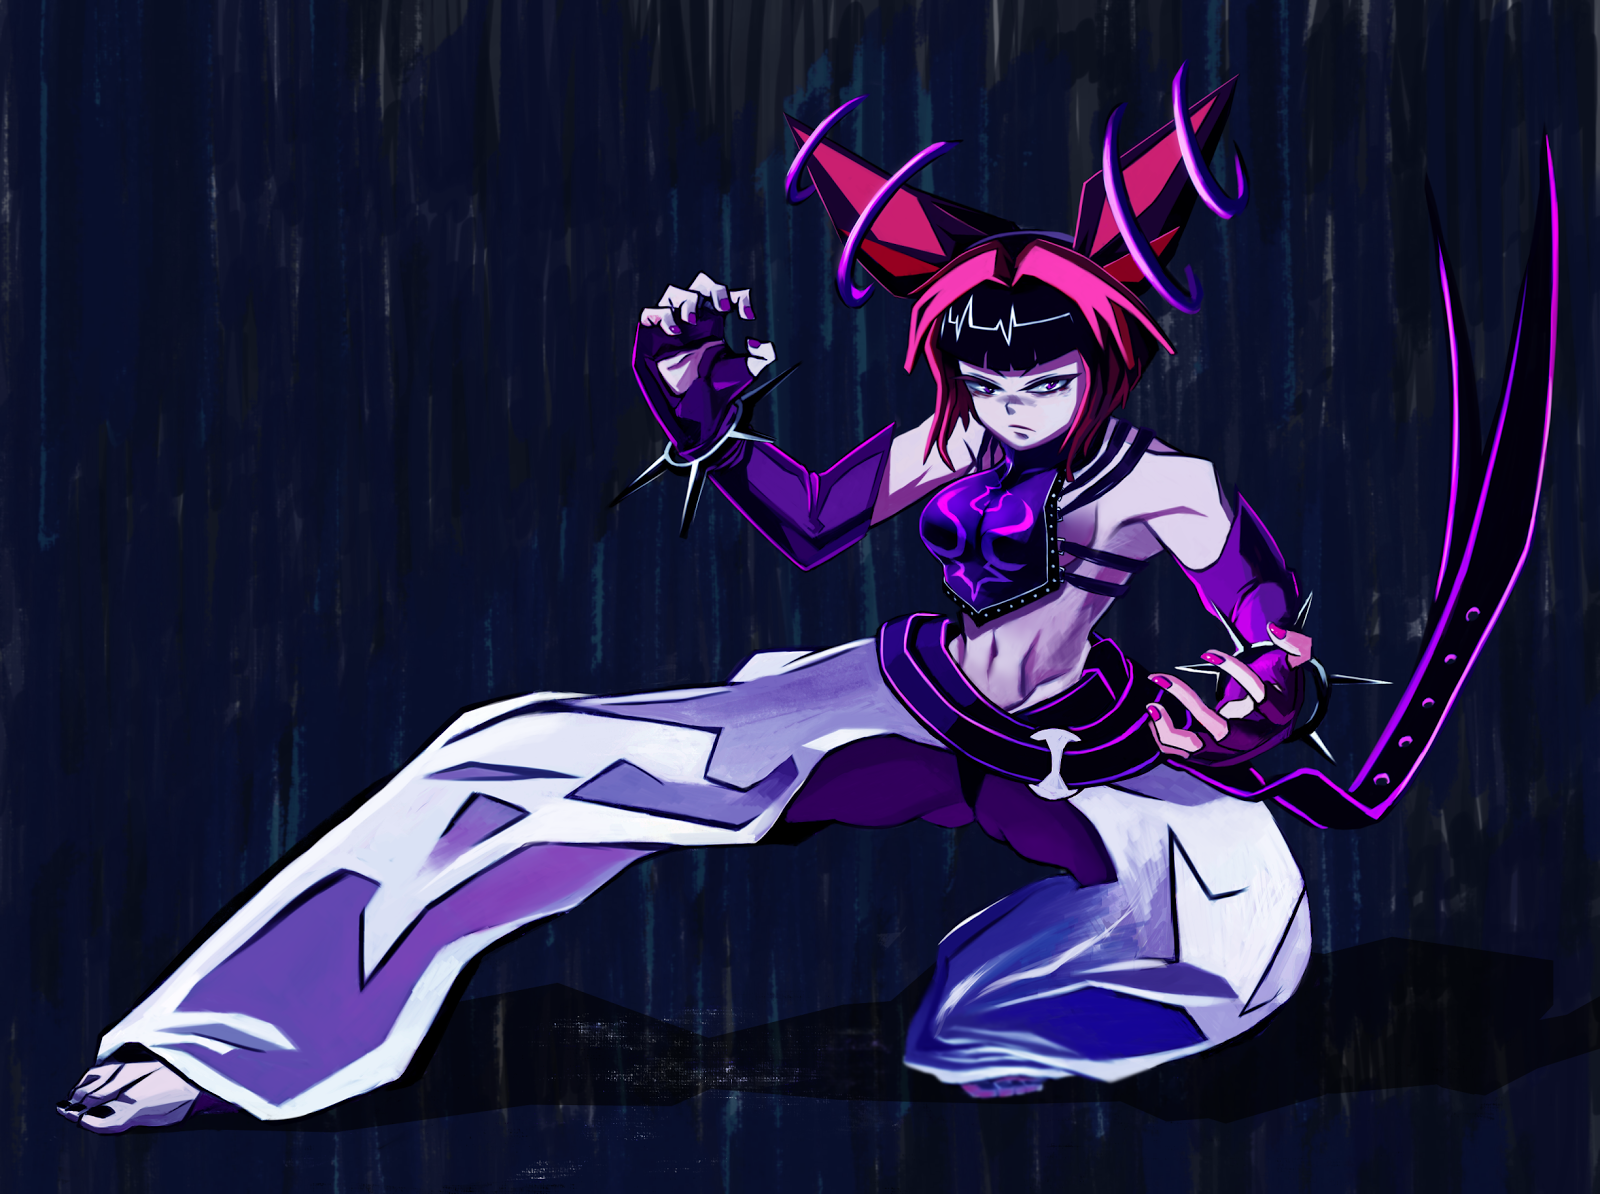 han juri in a 2d art